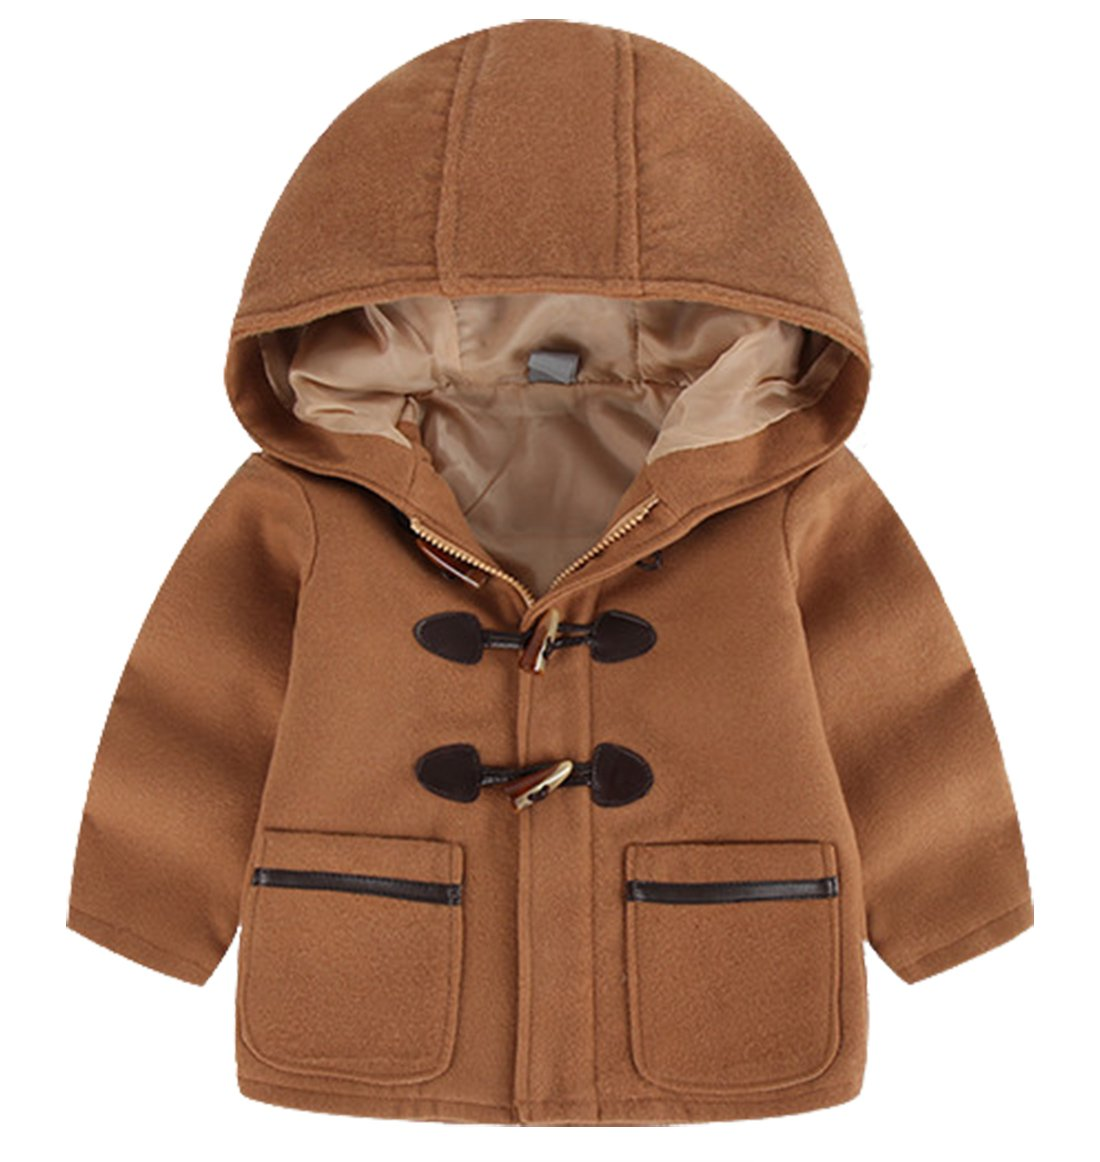 TXYSEFS Boys Coat Warm Jacket Hooded Overcoat Zipper Outwear